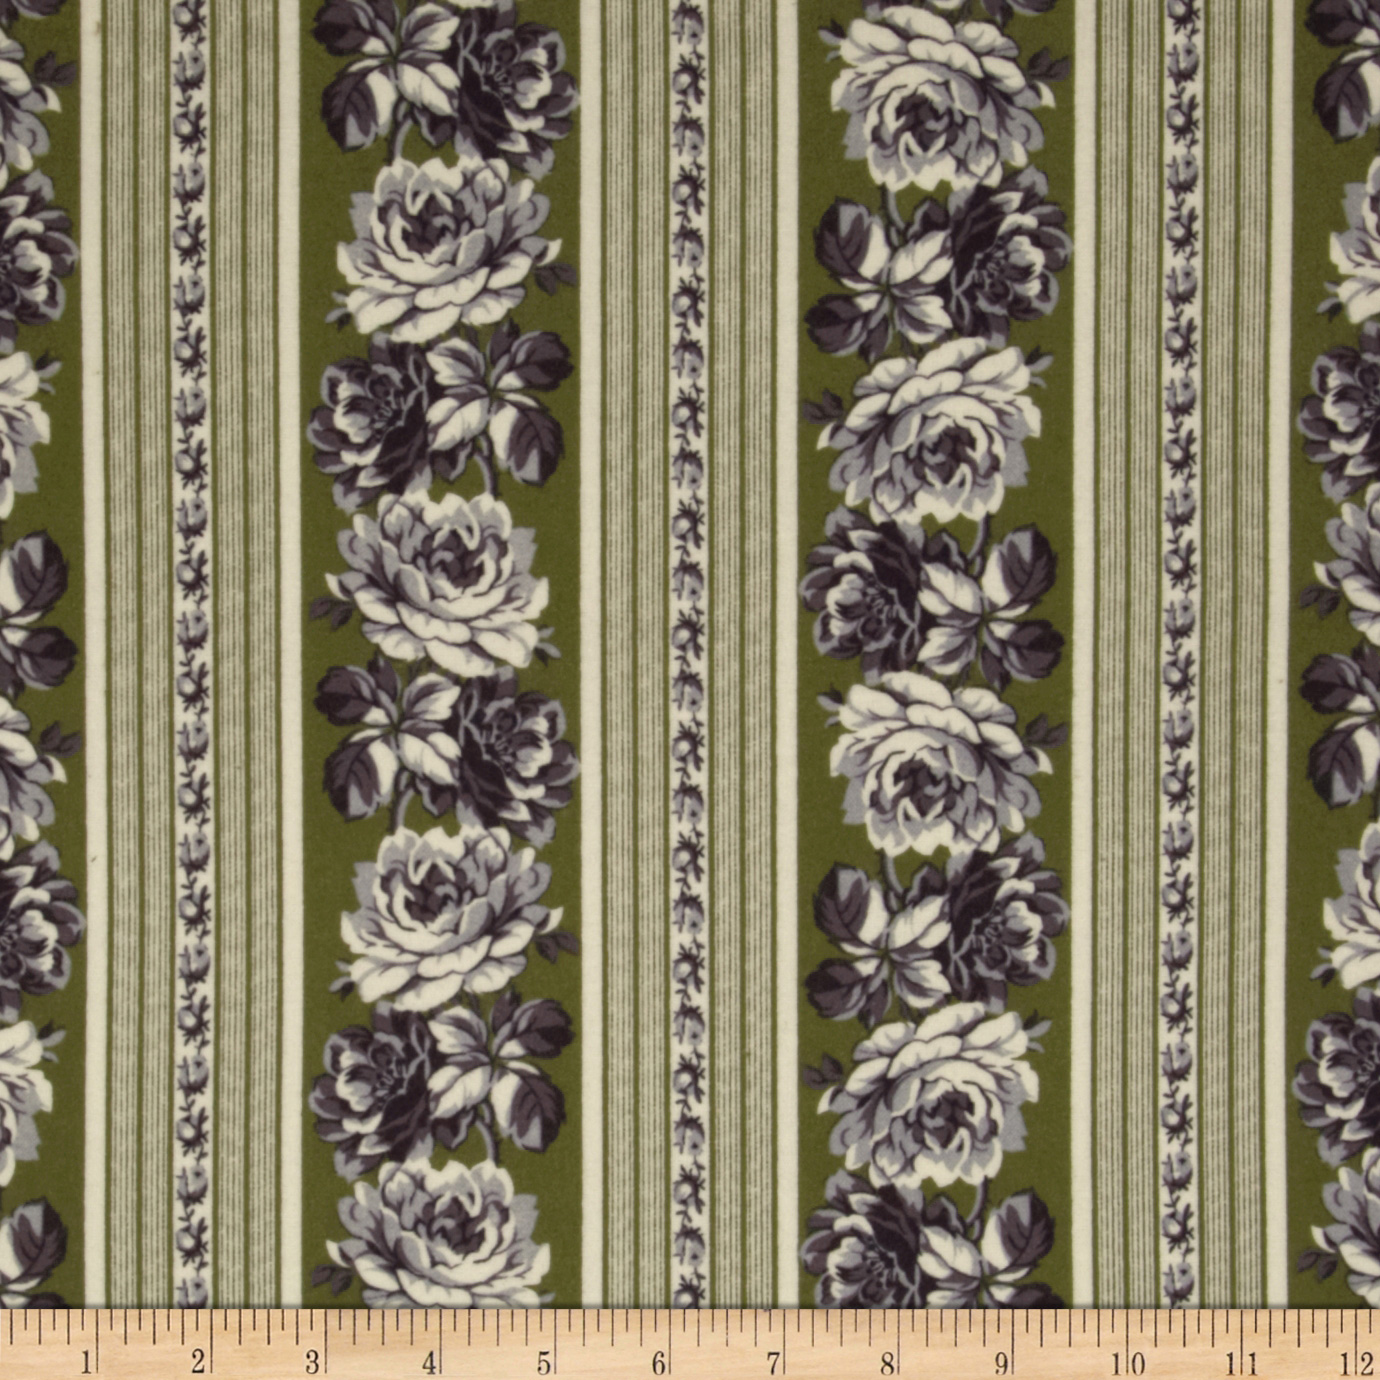 Flannel Rose Floral Stripes Green/White